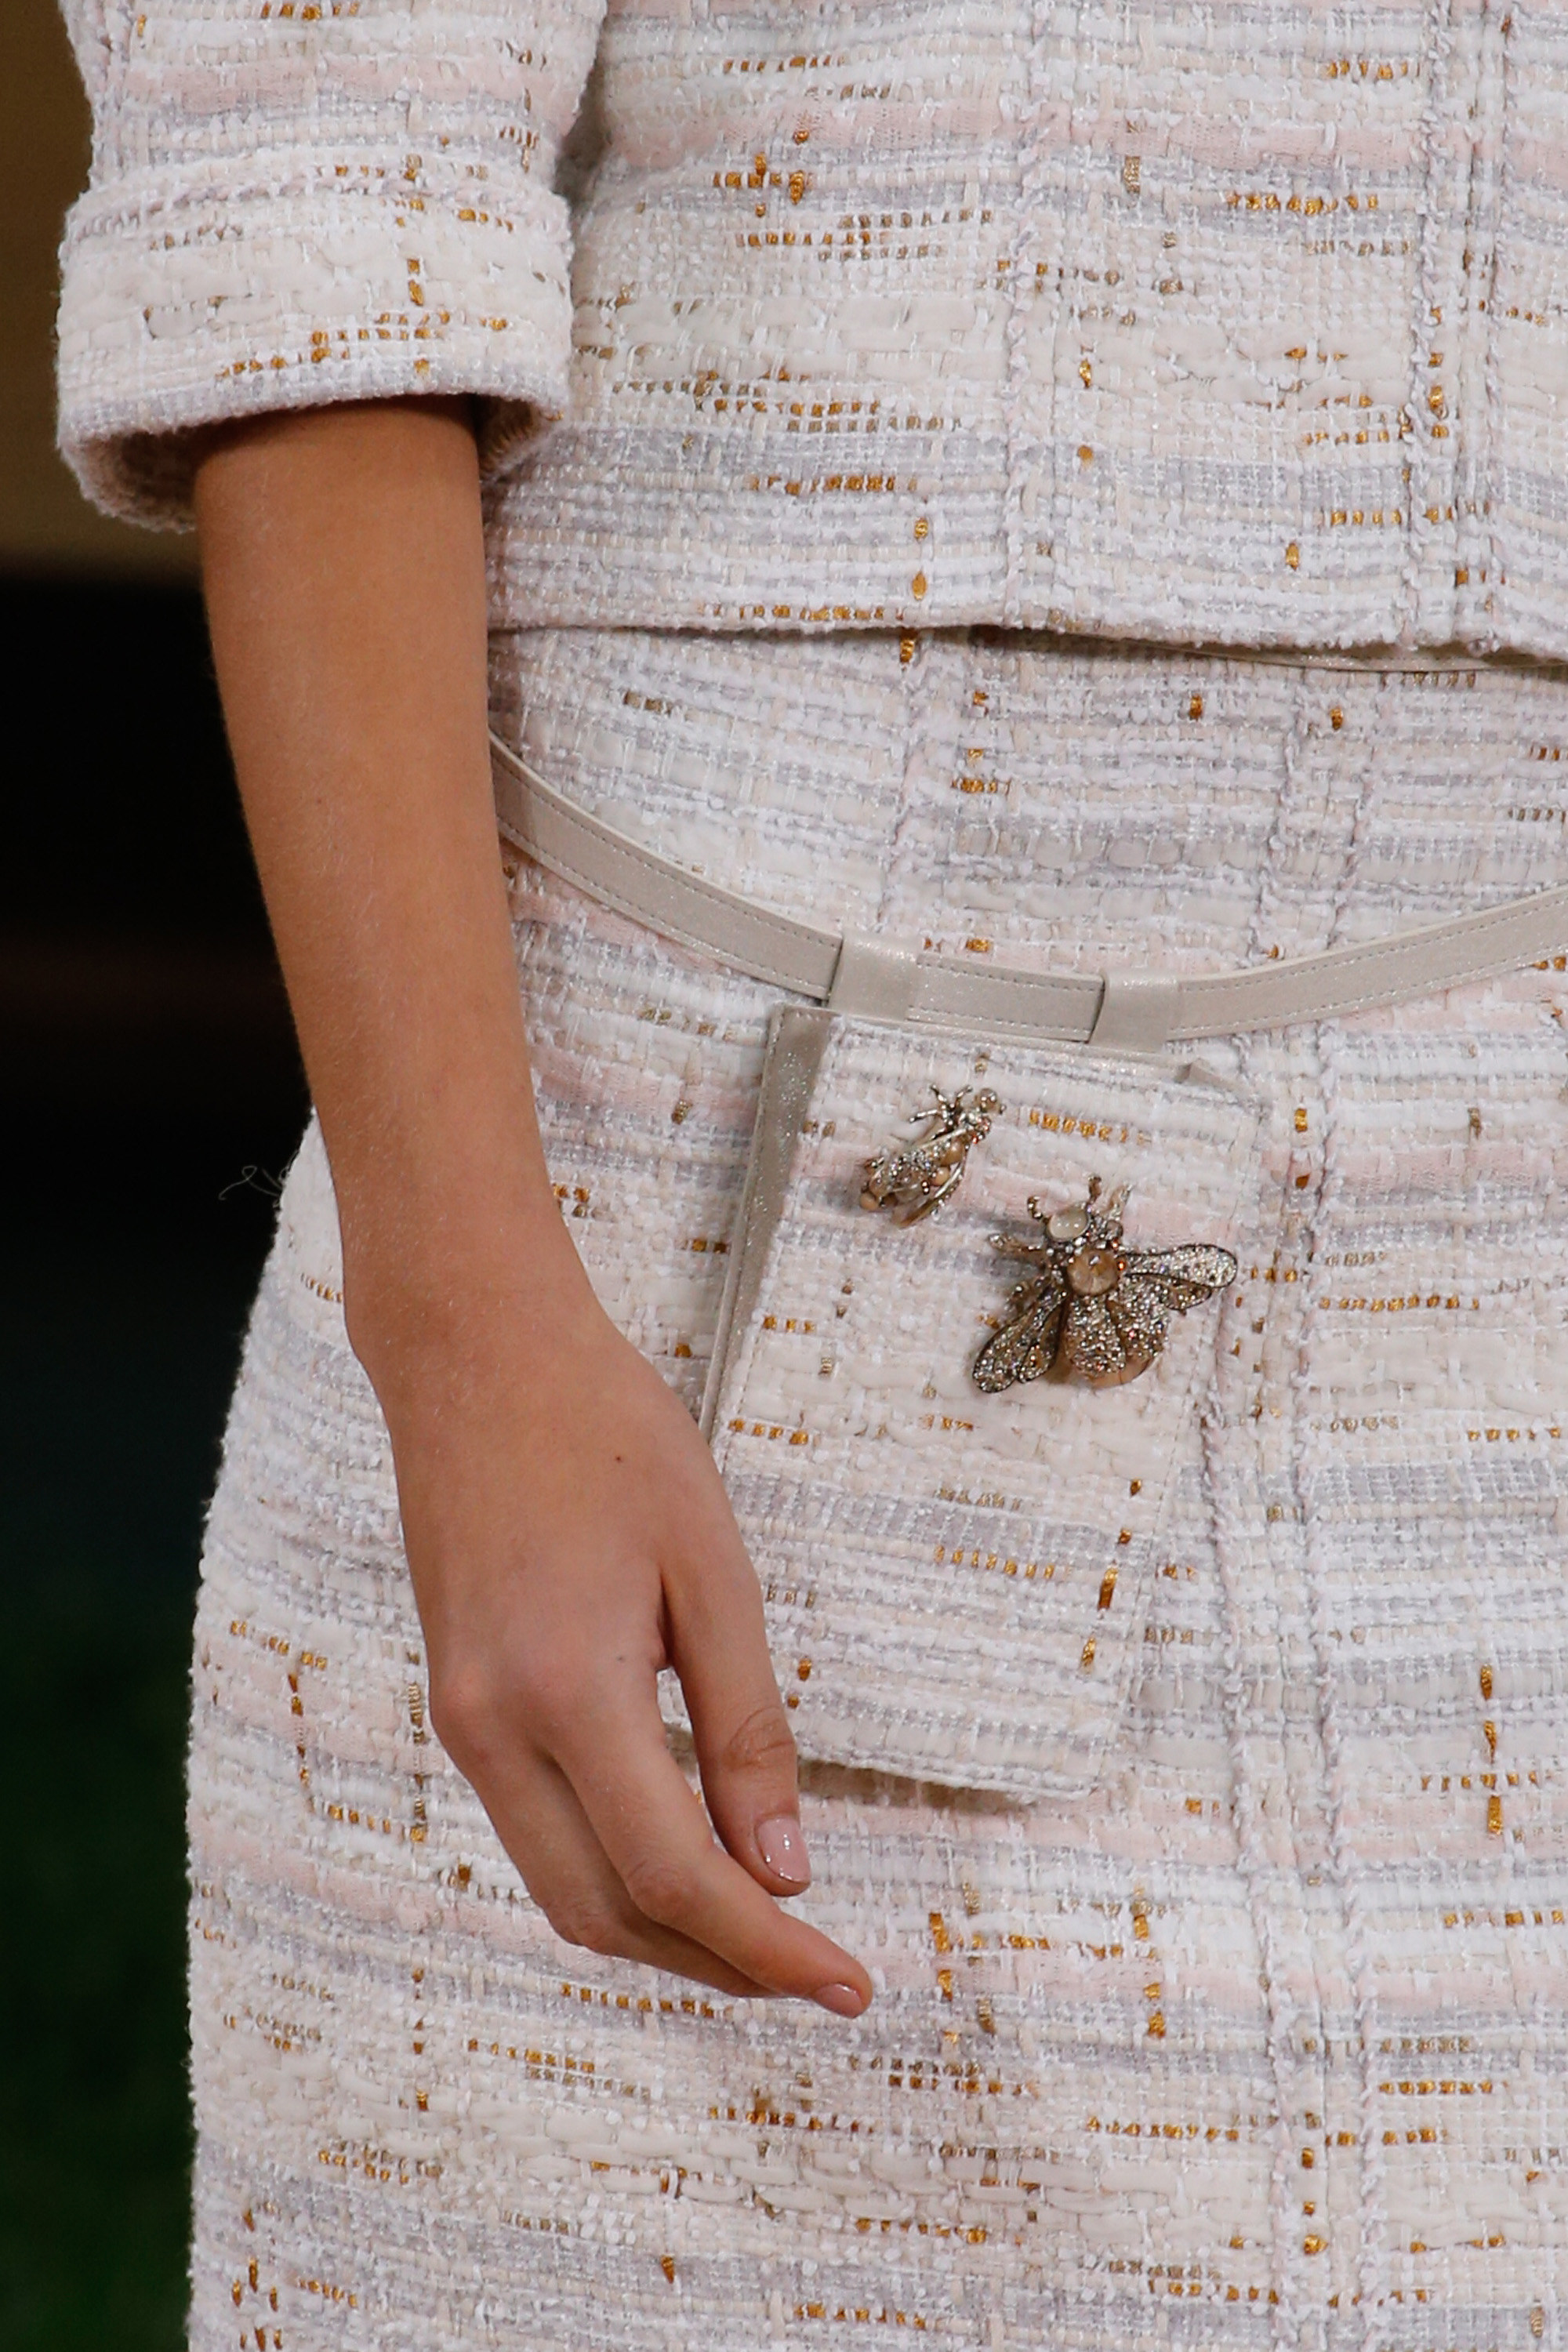 Homemade Banana // Chanel Couture Bug Embellishments